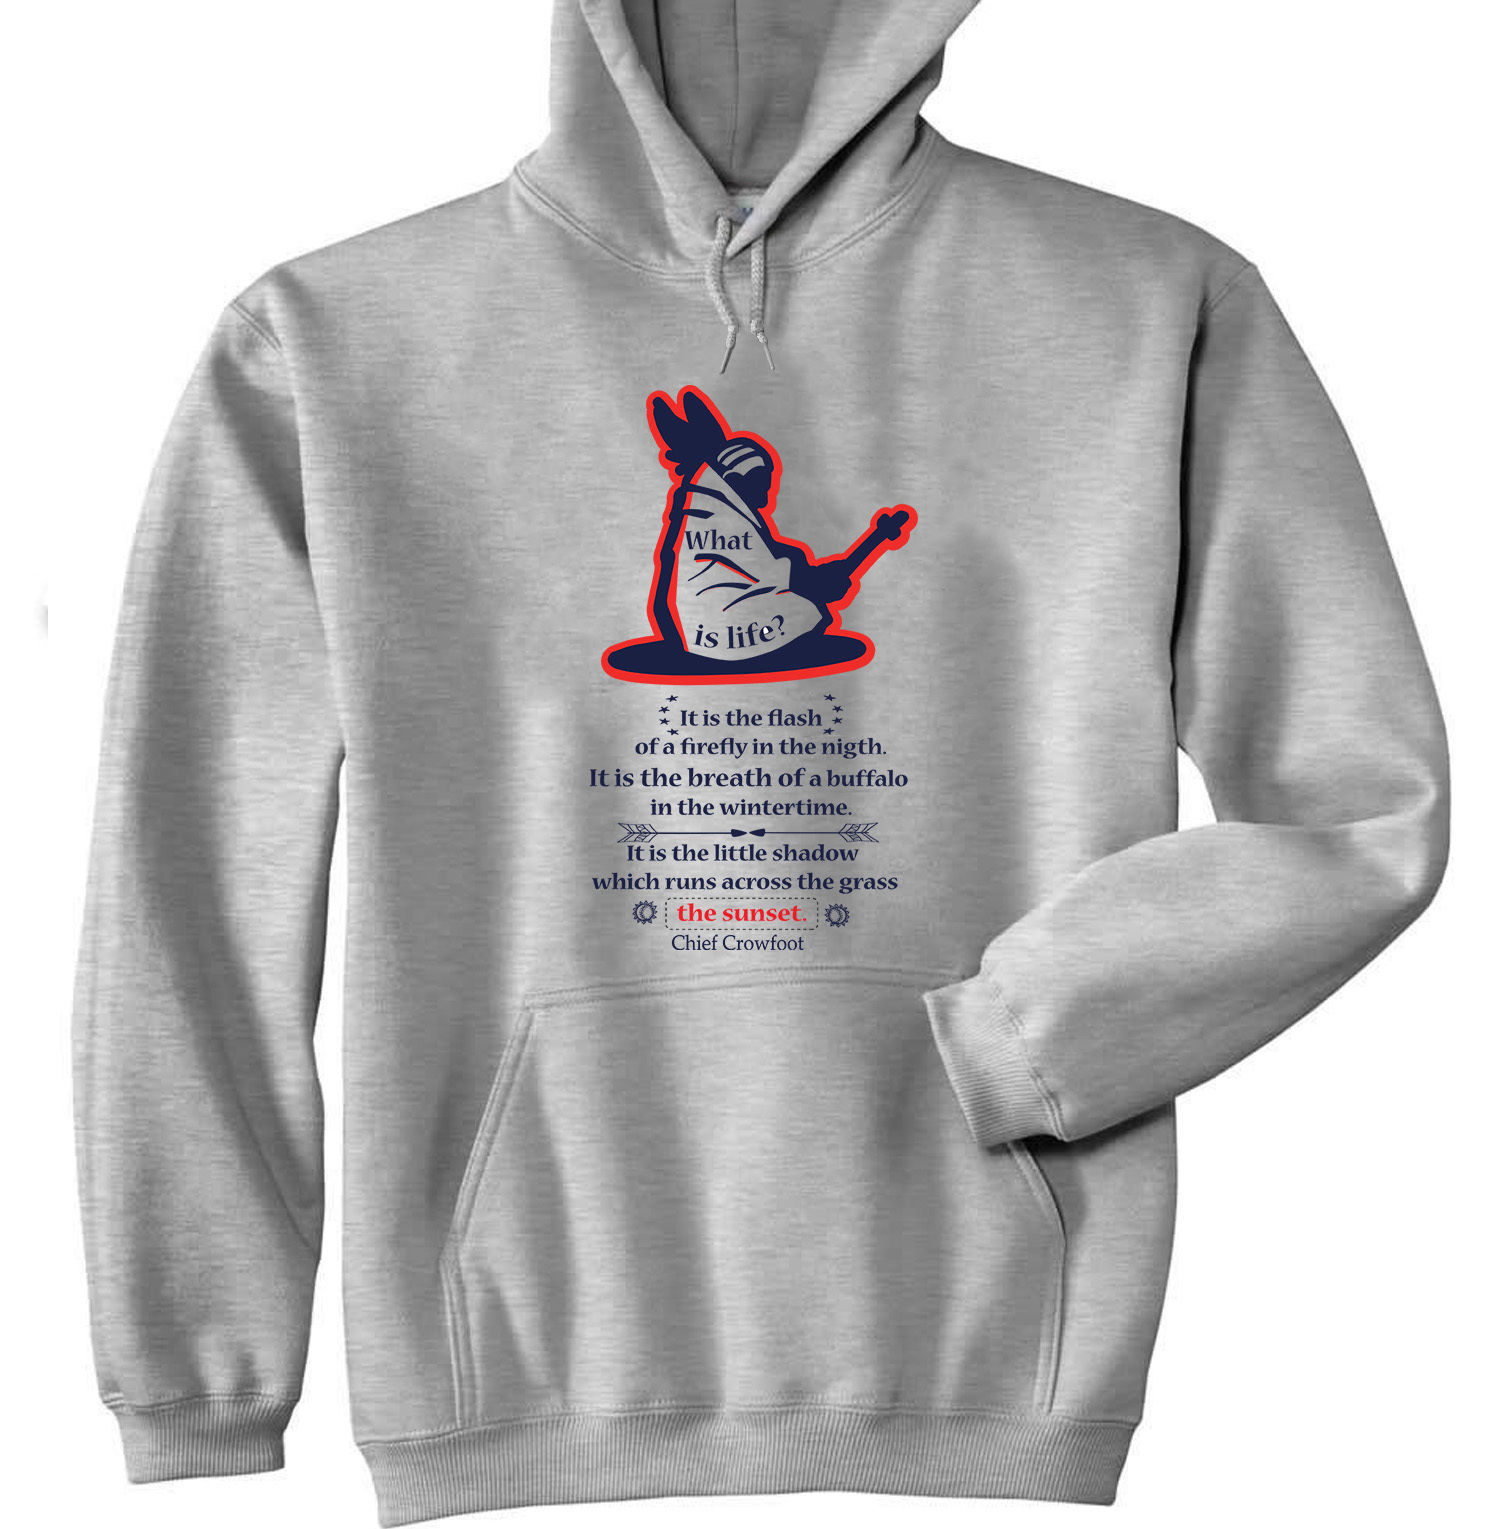 CHIEF CROWFOOT WHAT IS LIFE - NEW COTTON GREY HOODIE